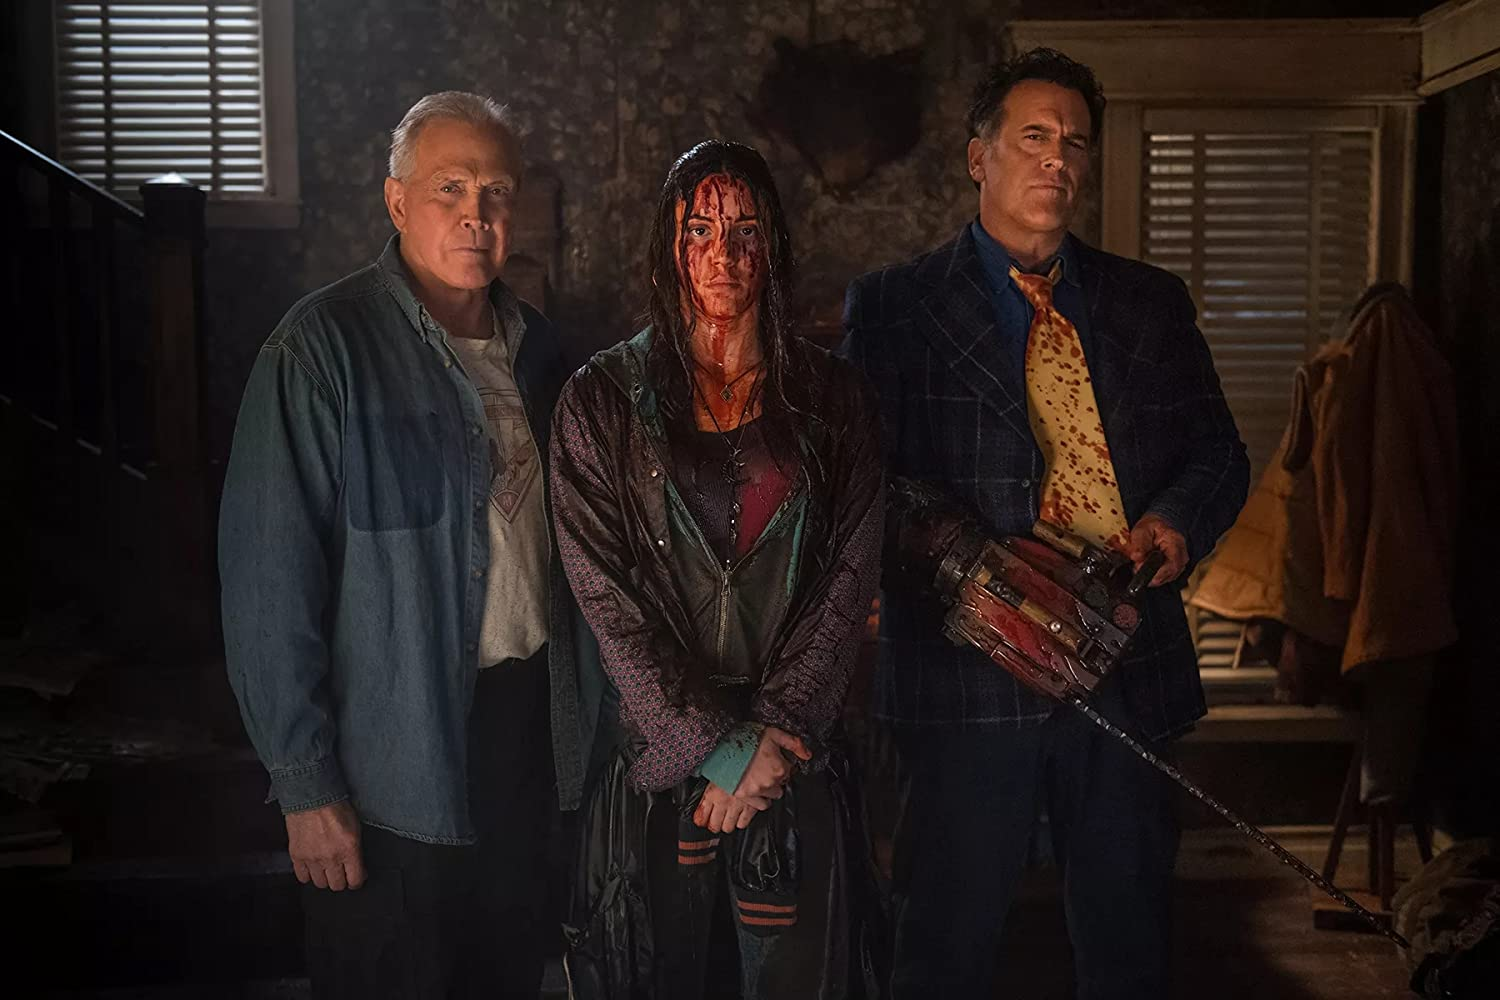 Lee Majors, Bruce Campbell, and Arielle Carver-O'Neill in Ash vs Evil Dead (2015)